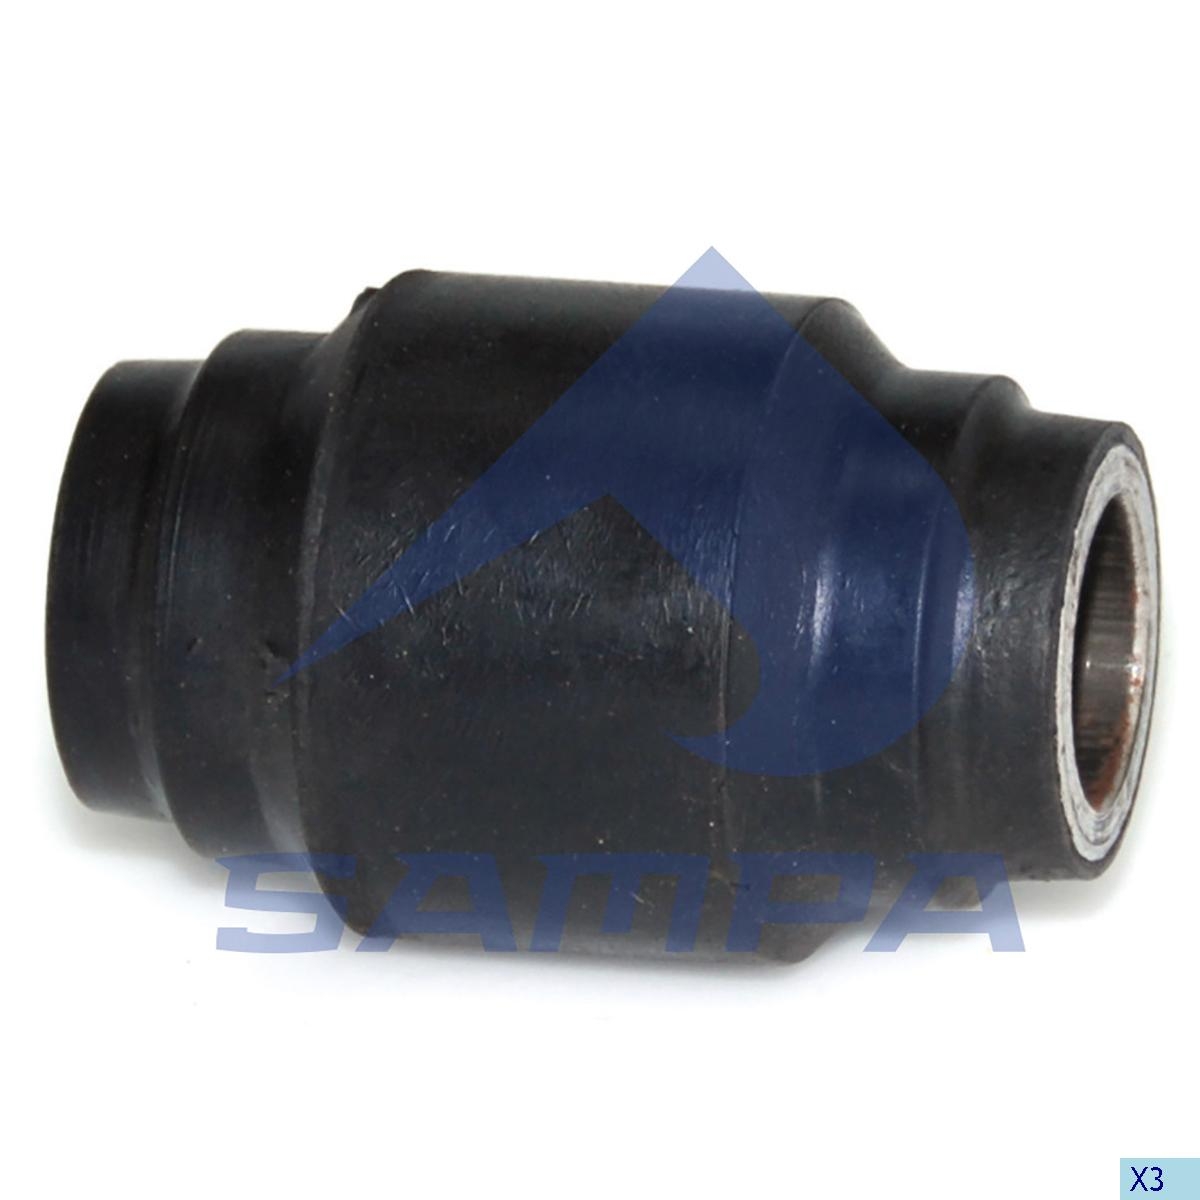 Rubber Bushing, Spring, Binkley, Suspension